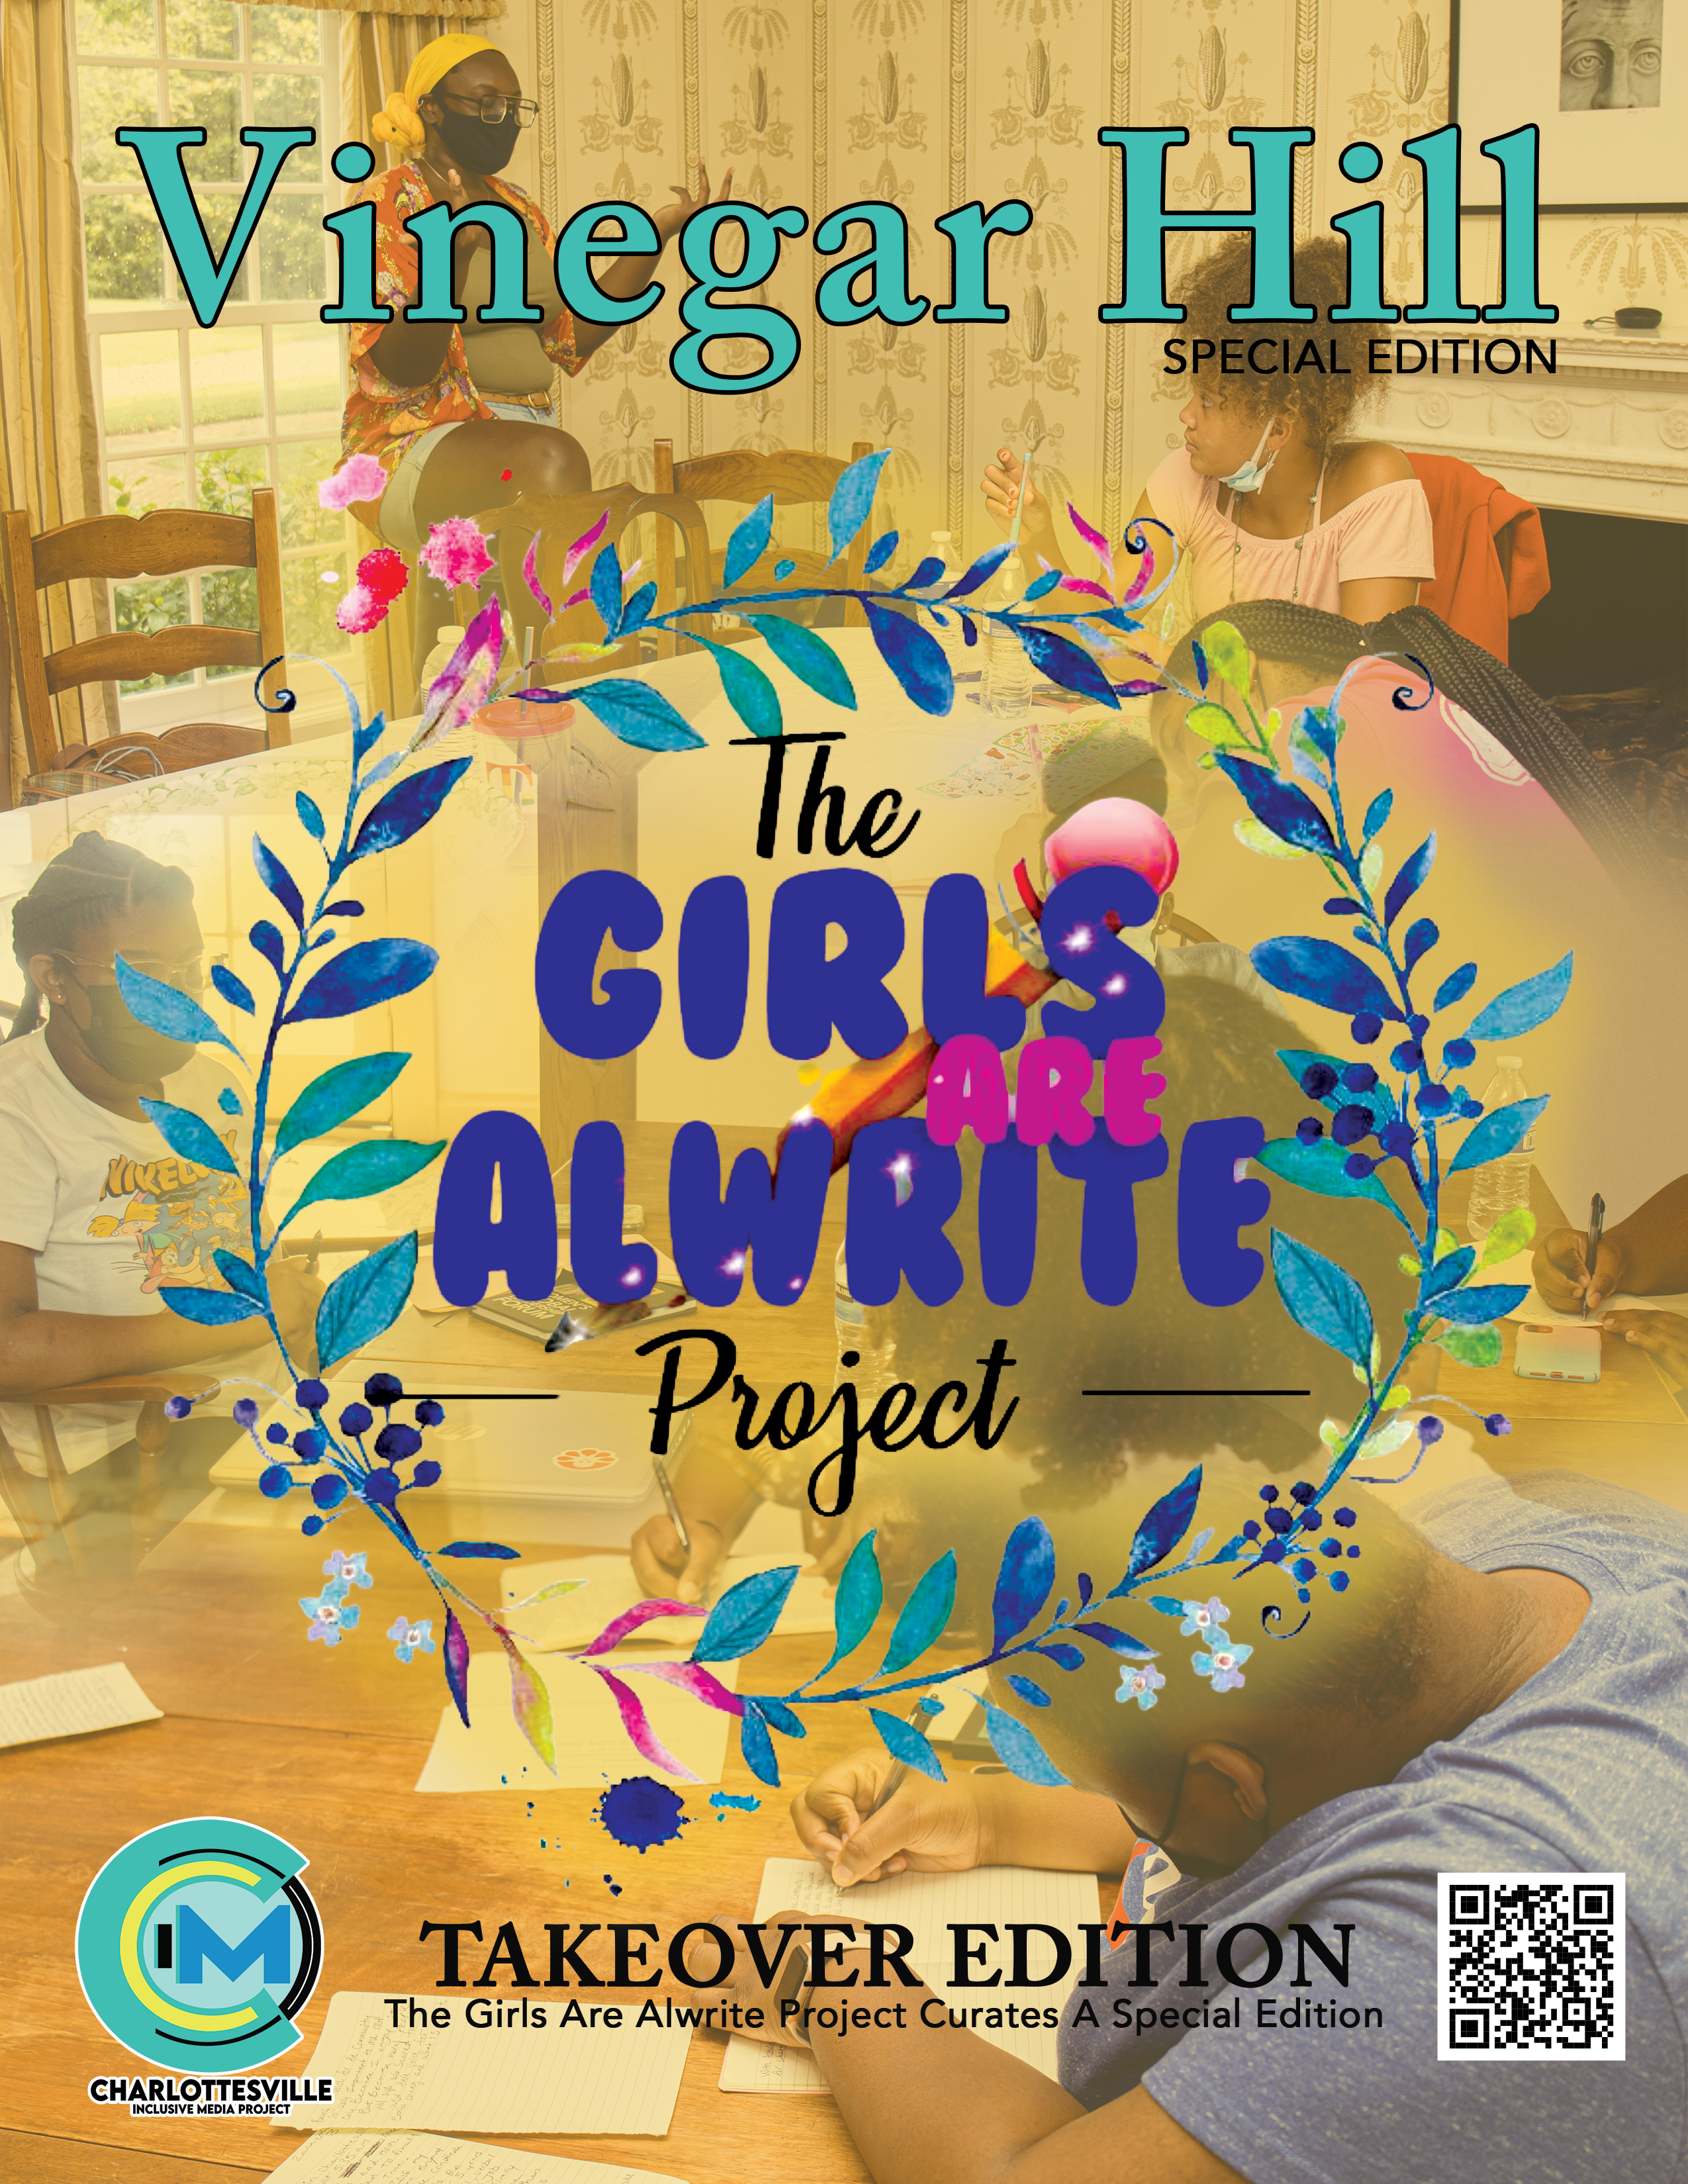 The Girls Are Alwrite Takes Over New Issue